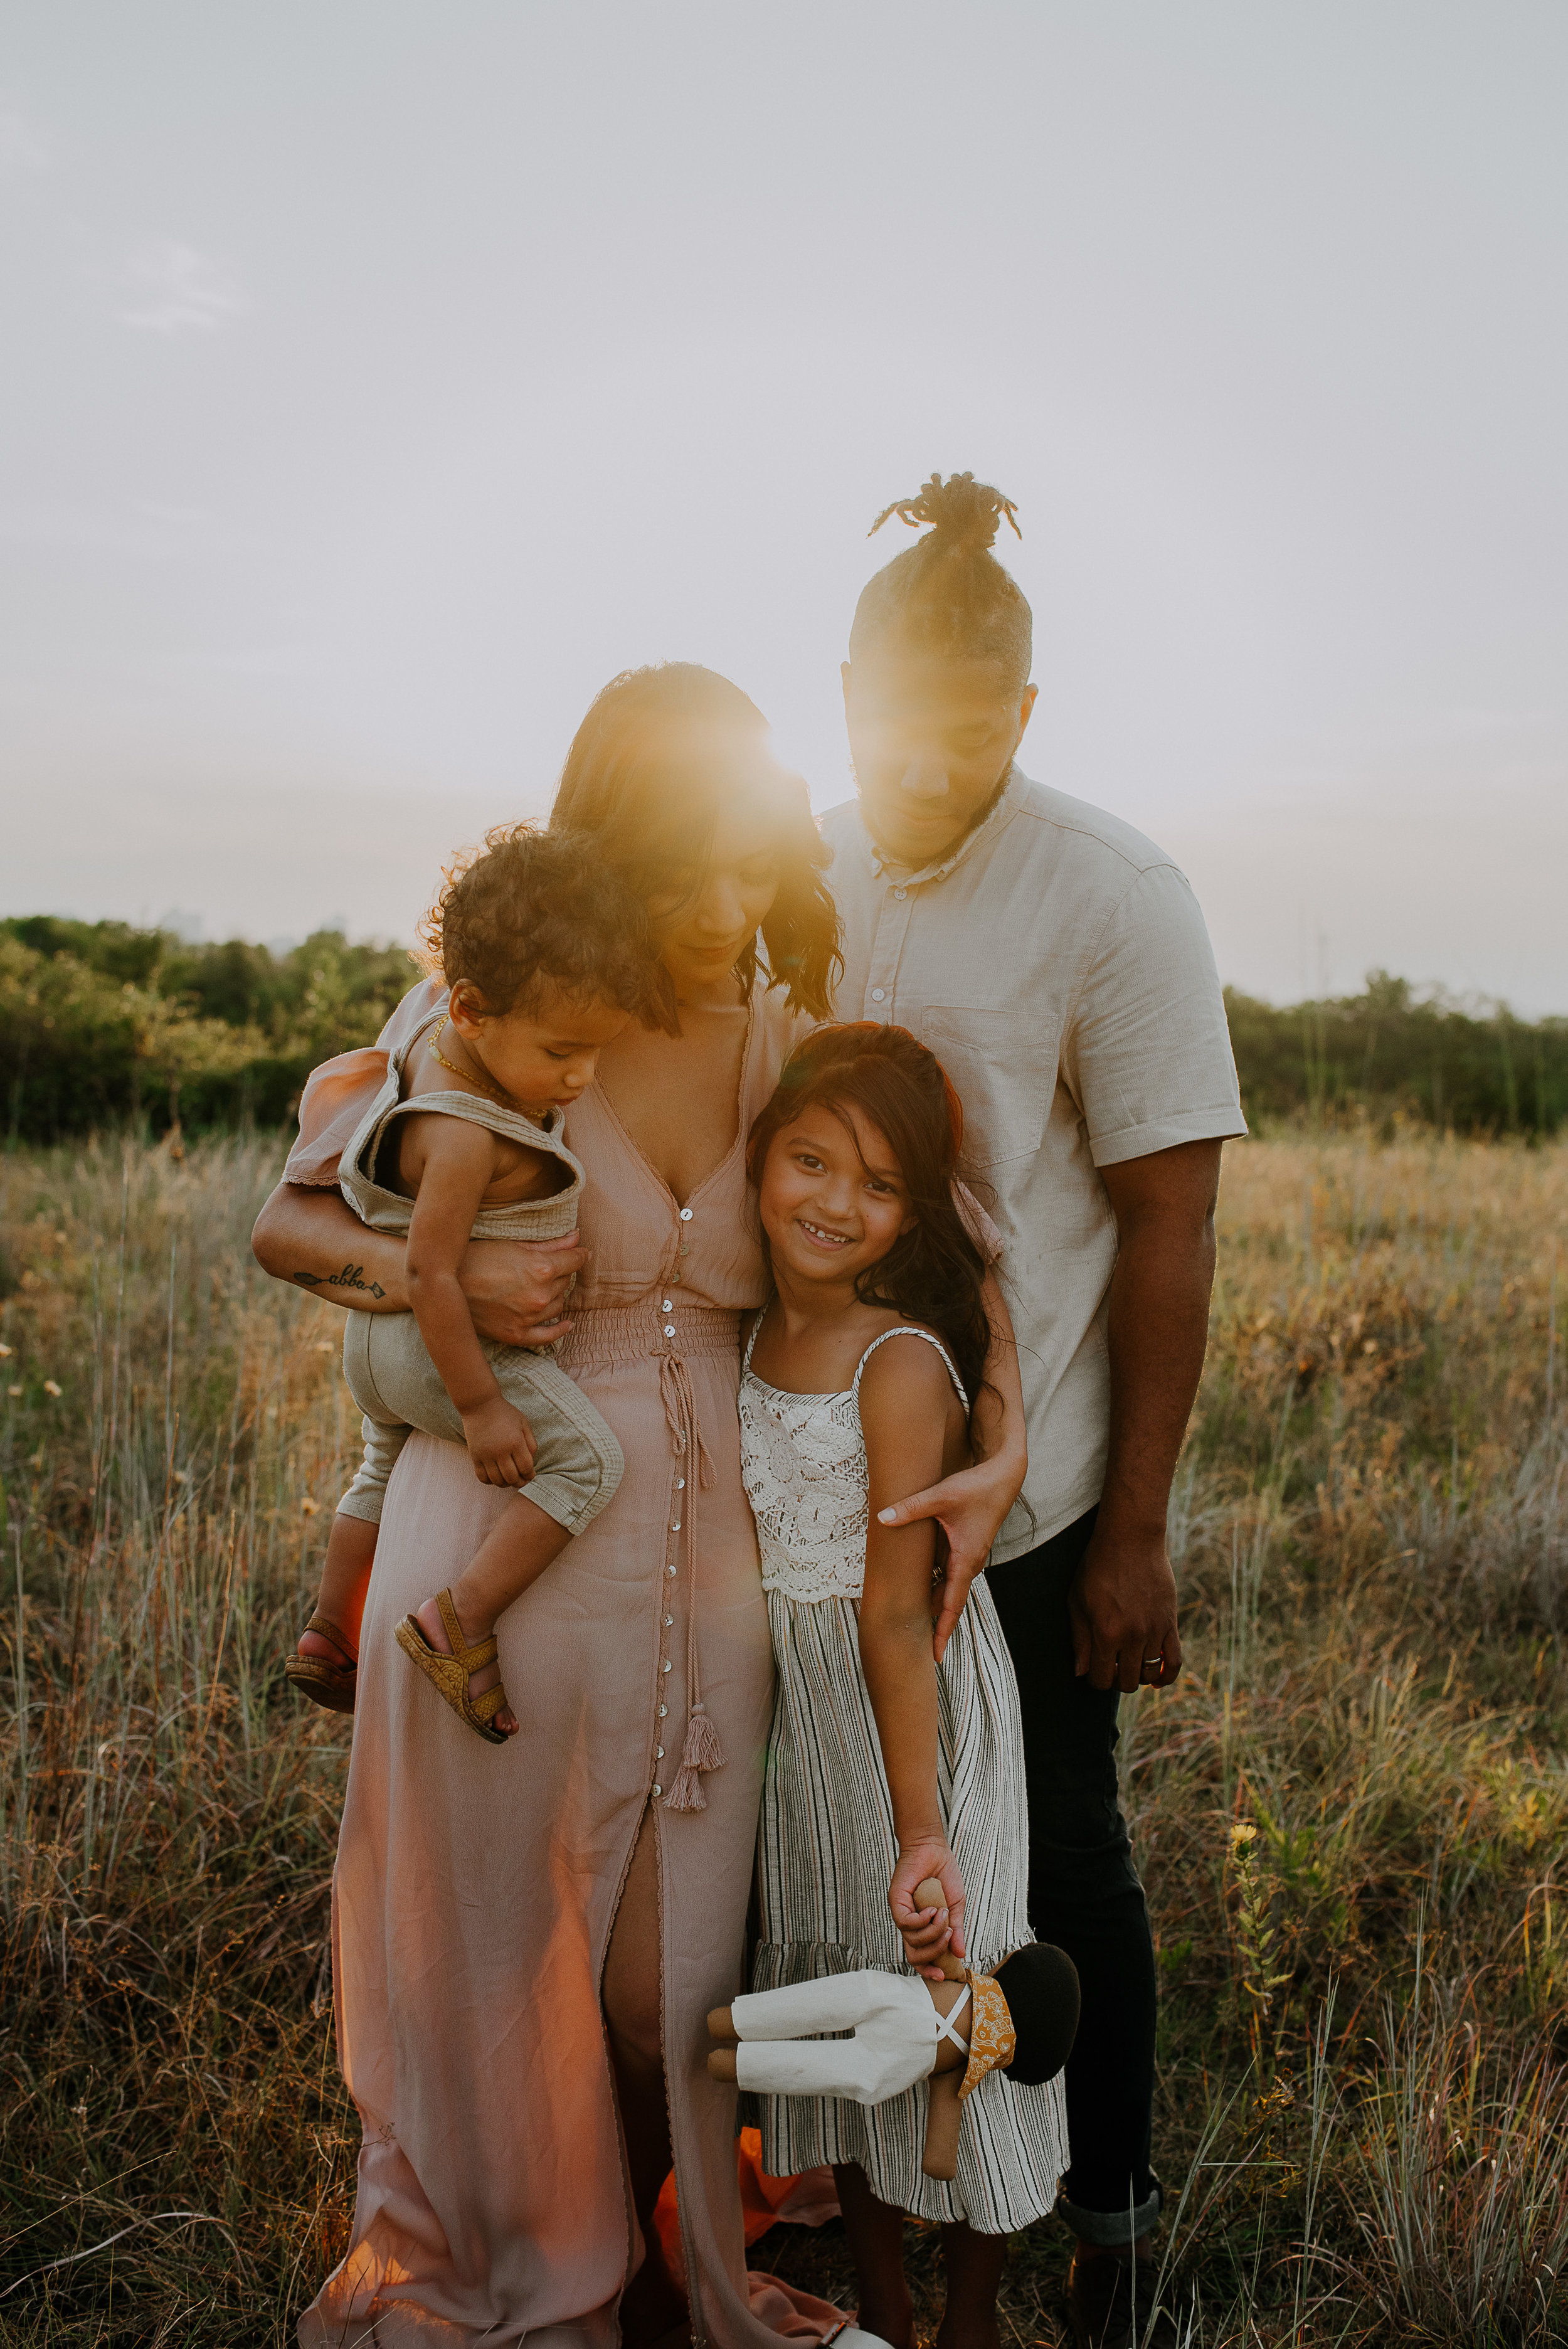 Jessi-marie-photography-dallas-fort-worth-texas-family-photographer-tandy-hills-natural-area-34